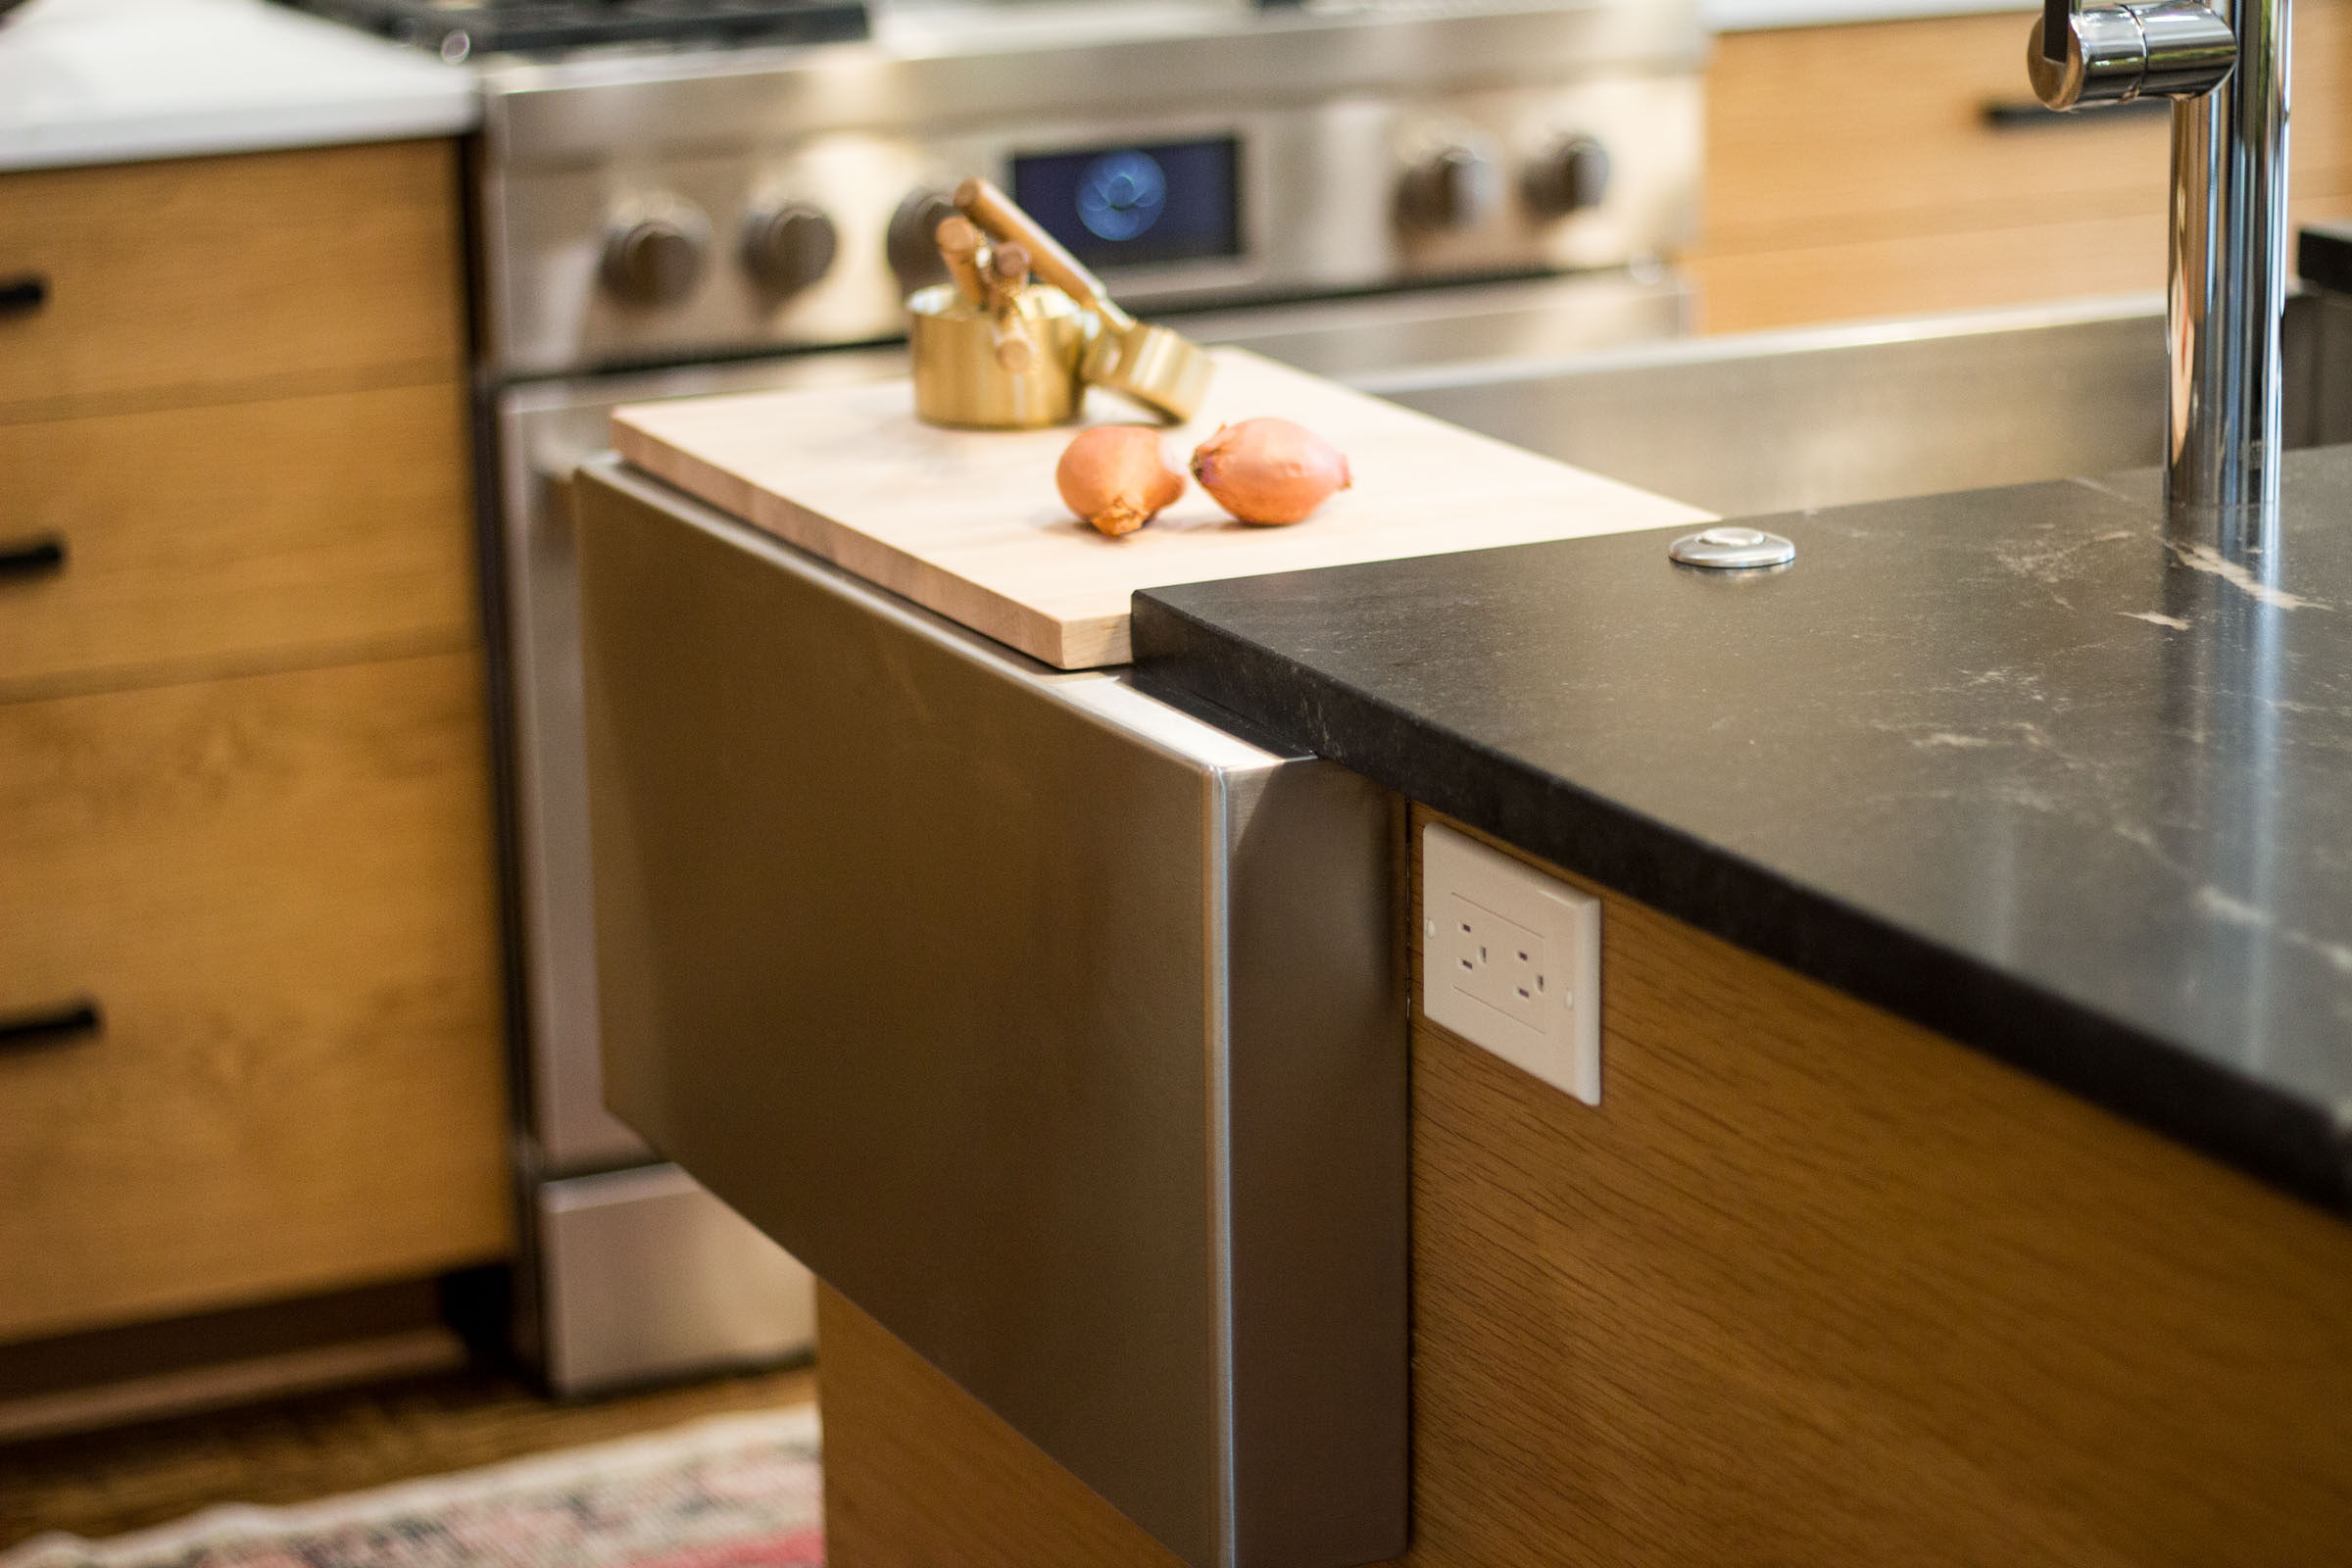 Detail picture of a kitchen remodel with black granite, stainless steel appliances, and a raw wood cutting board.